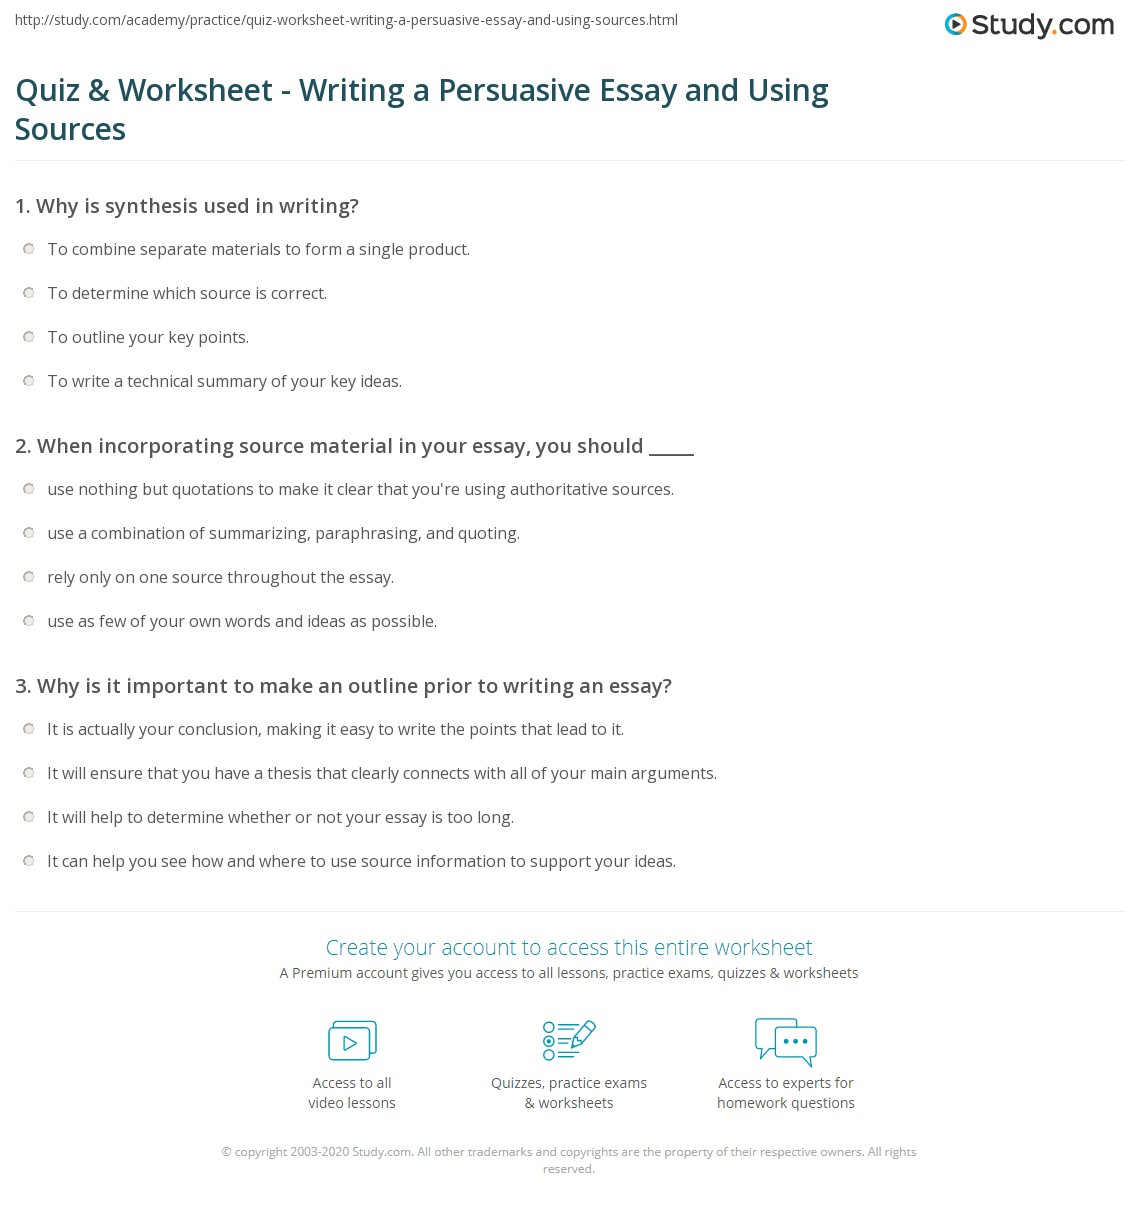 how to make a persuasive essay images about writing persuasive quiz amp worksheet writing a persuasive essay and using sources print how to write a persuasive